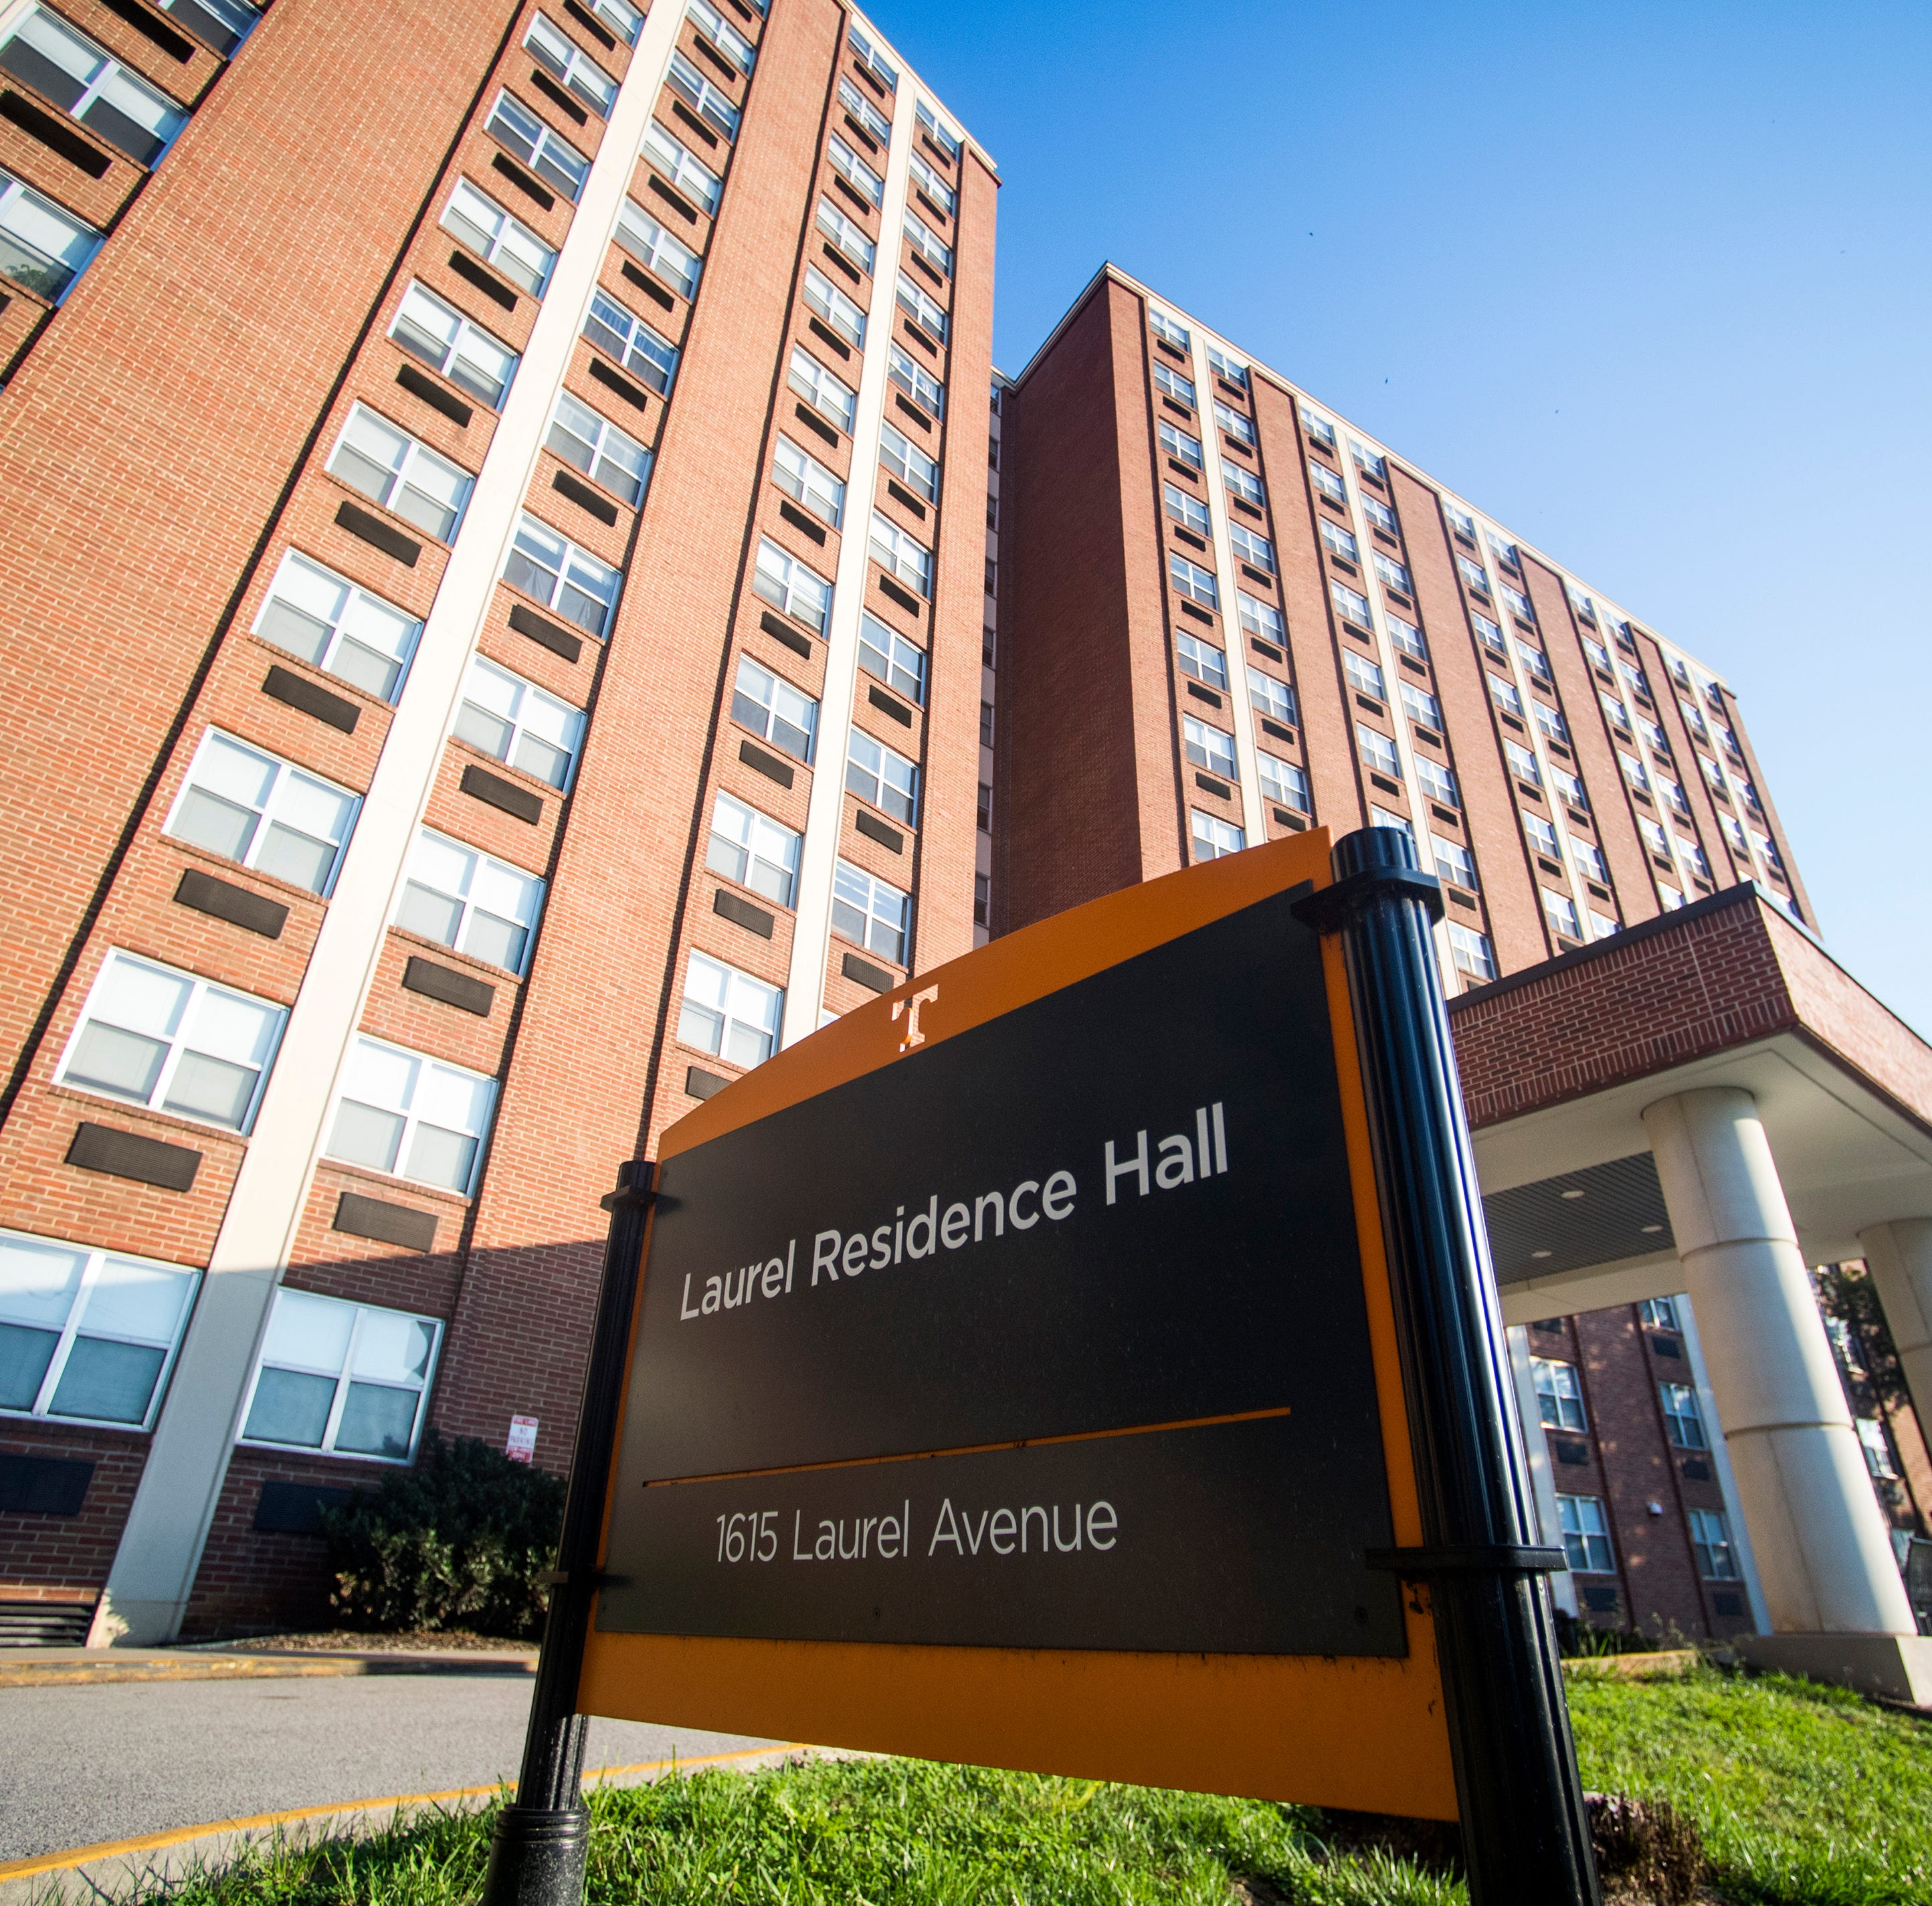 Mold found in more University of Tennessee dorms, over 100 students dump housing contracts